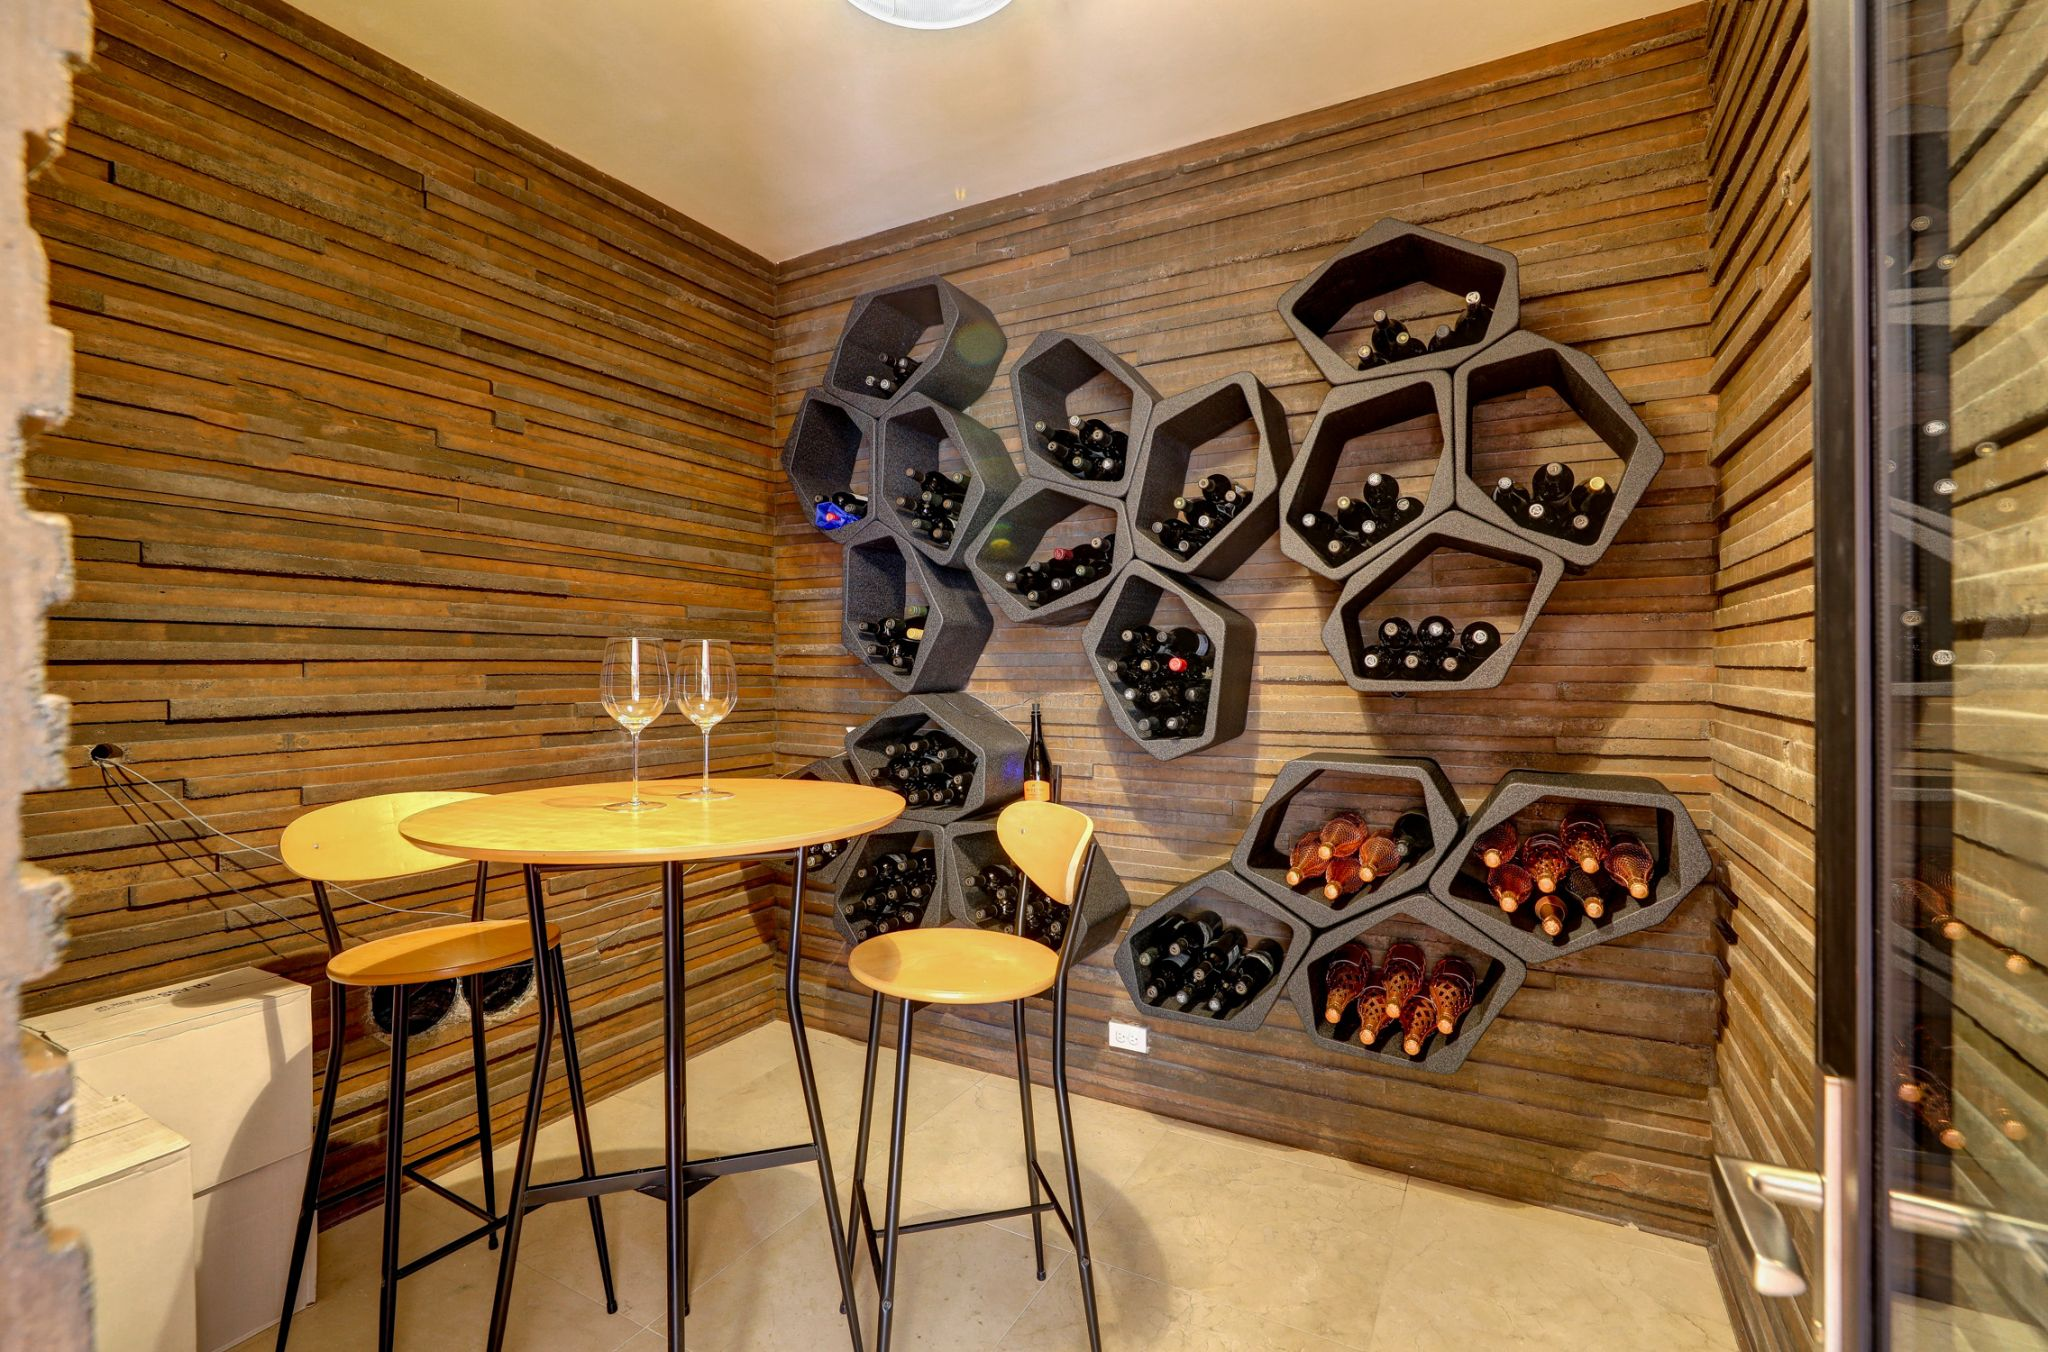 A home like this would not be complete without a wine cellar and tasting space.